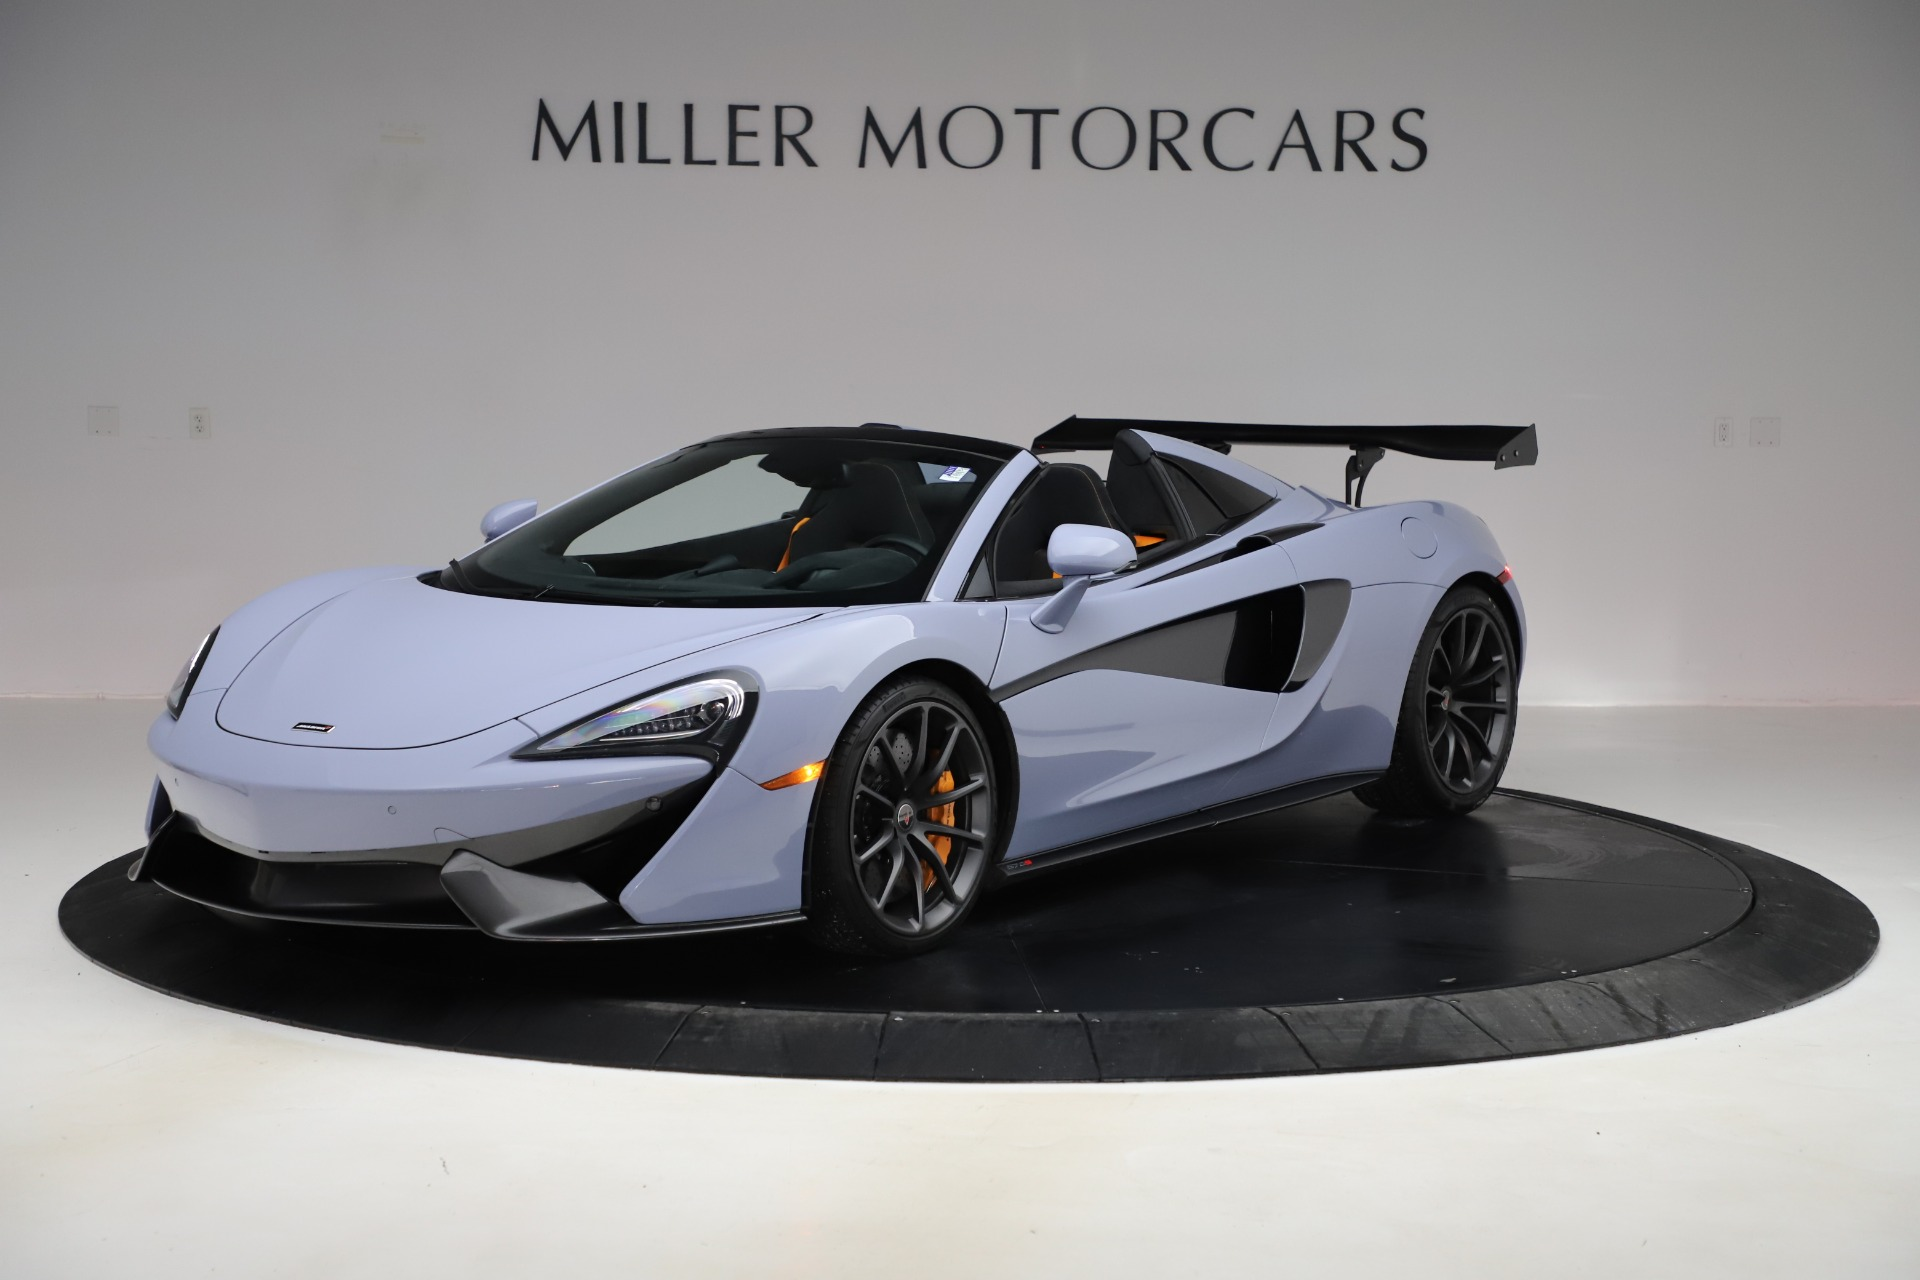 Used 2018 McLaren 570S Spider for sale $167,900 at Bentley Greenwich in Greenwich CT 06830 1